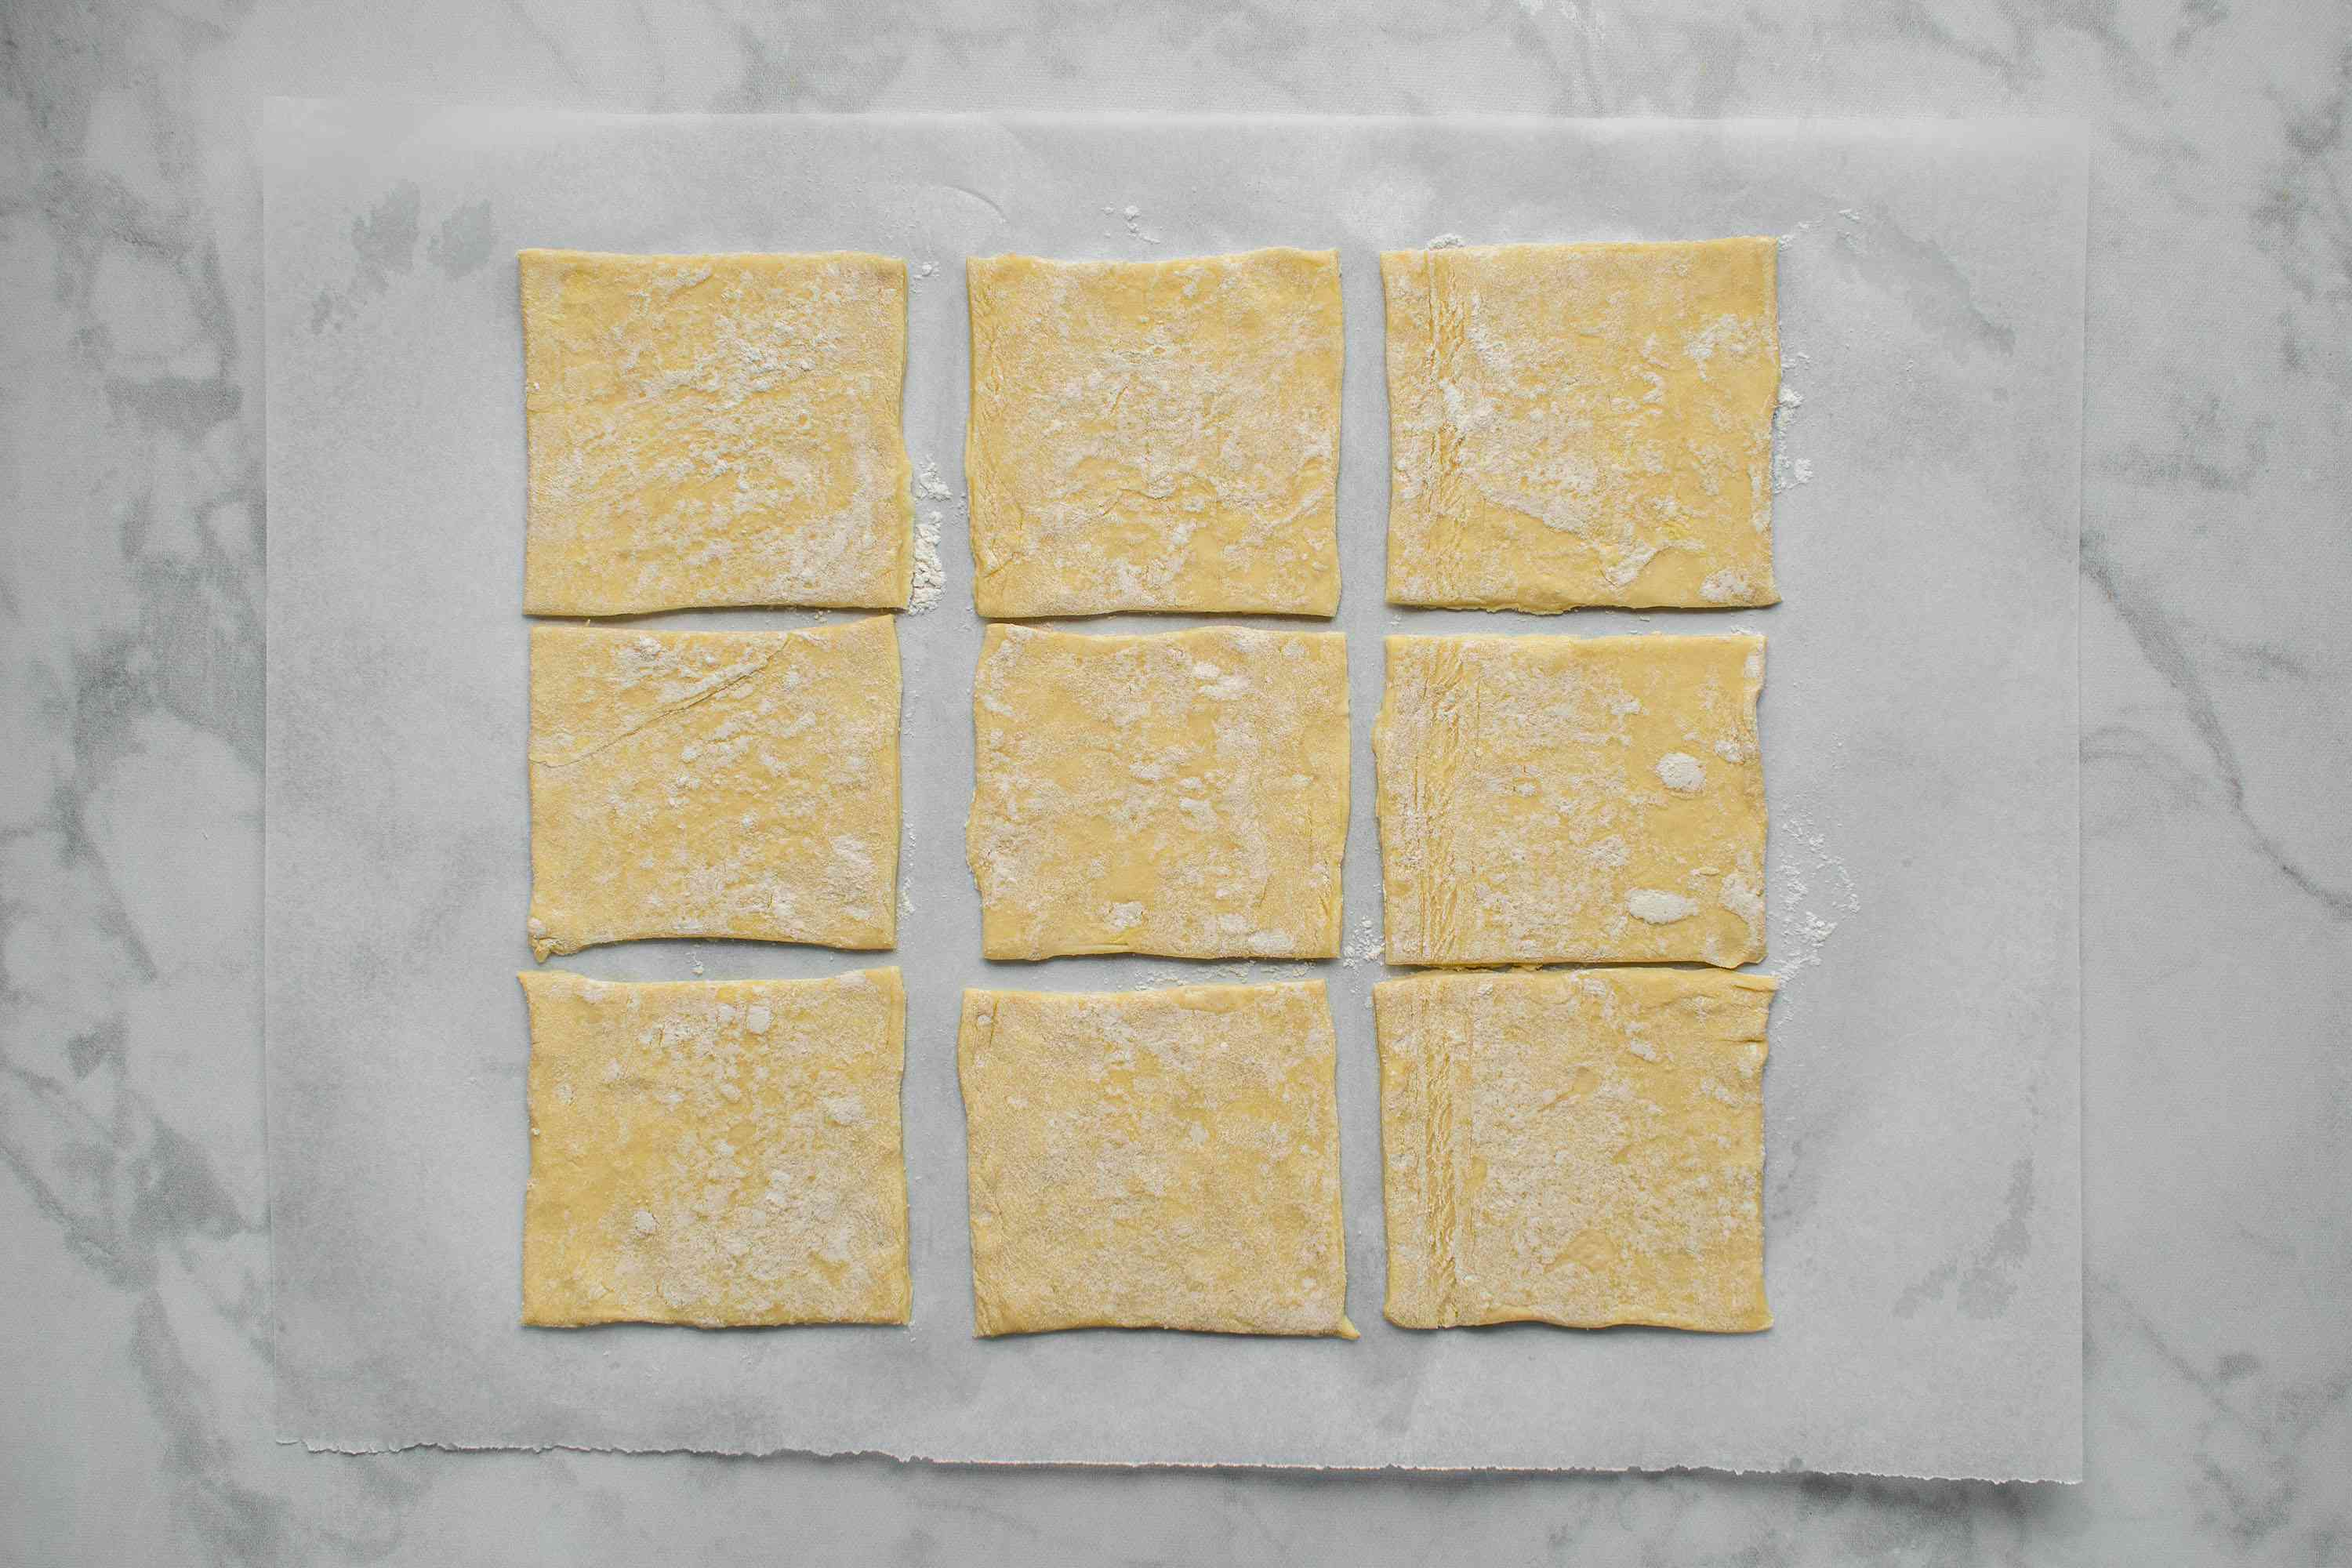 puff pastry cut into pieces